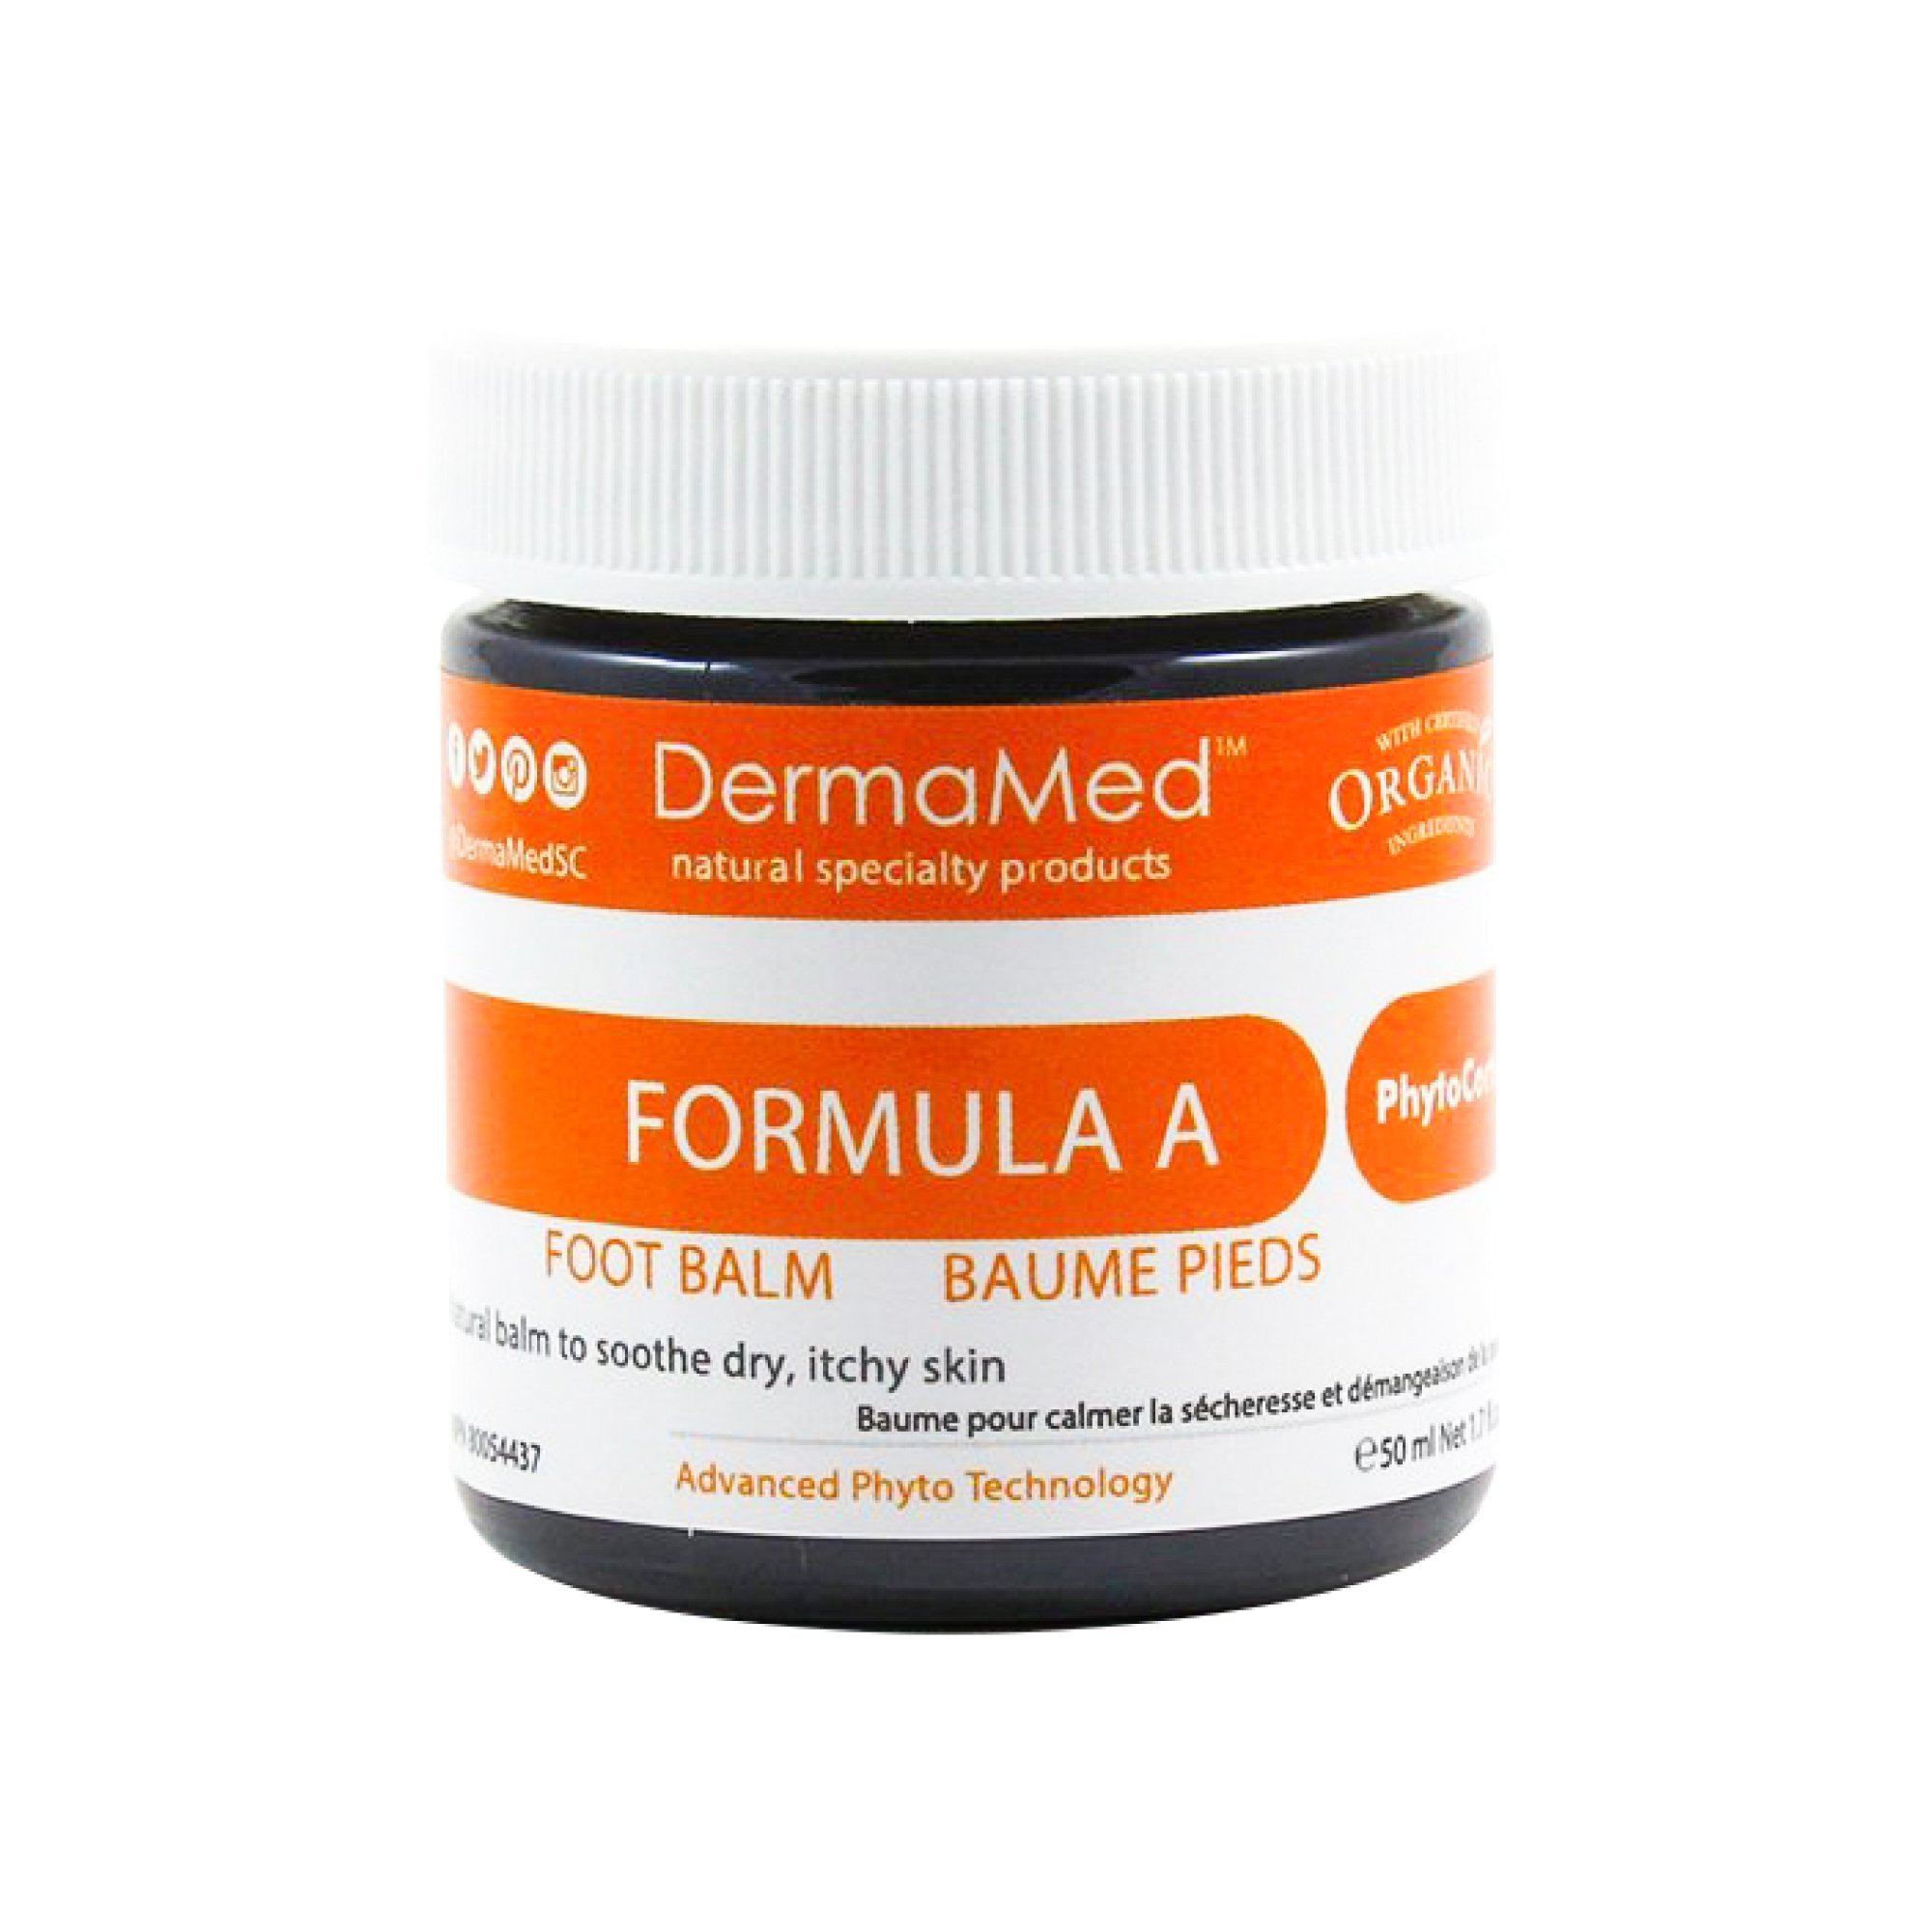 Best Foot Balm Fungal Infections Treatment DERMAMED Clinical Proven Natural Ingredients